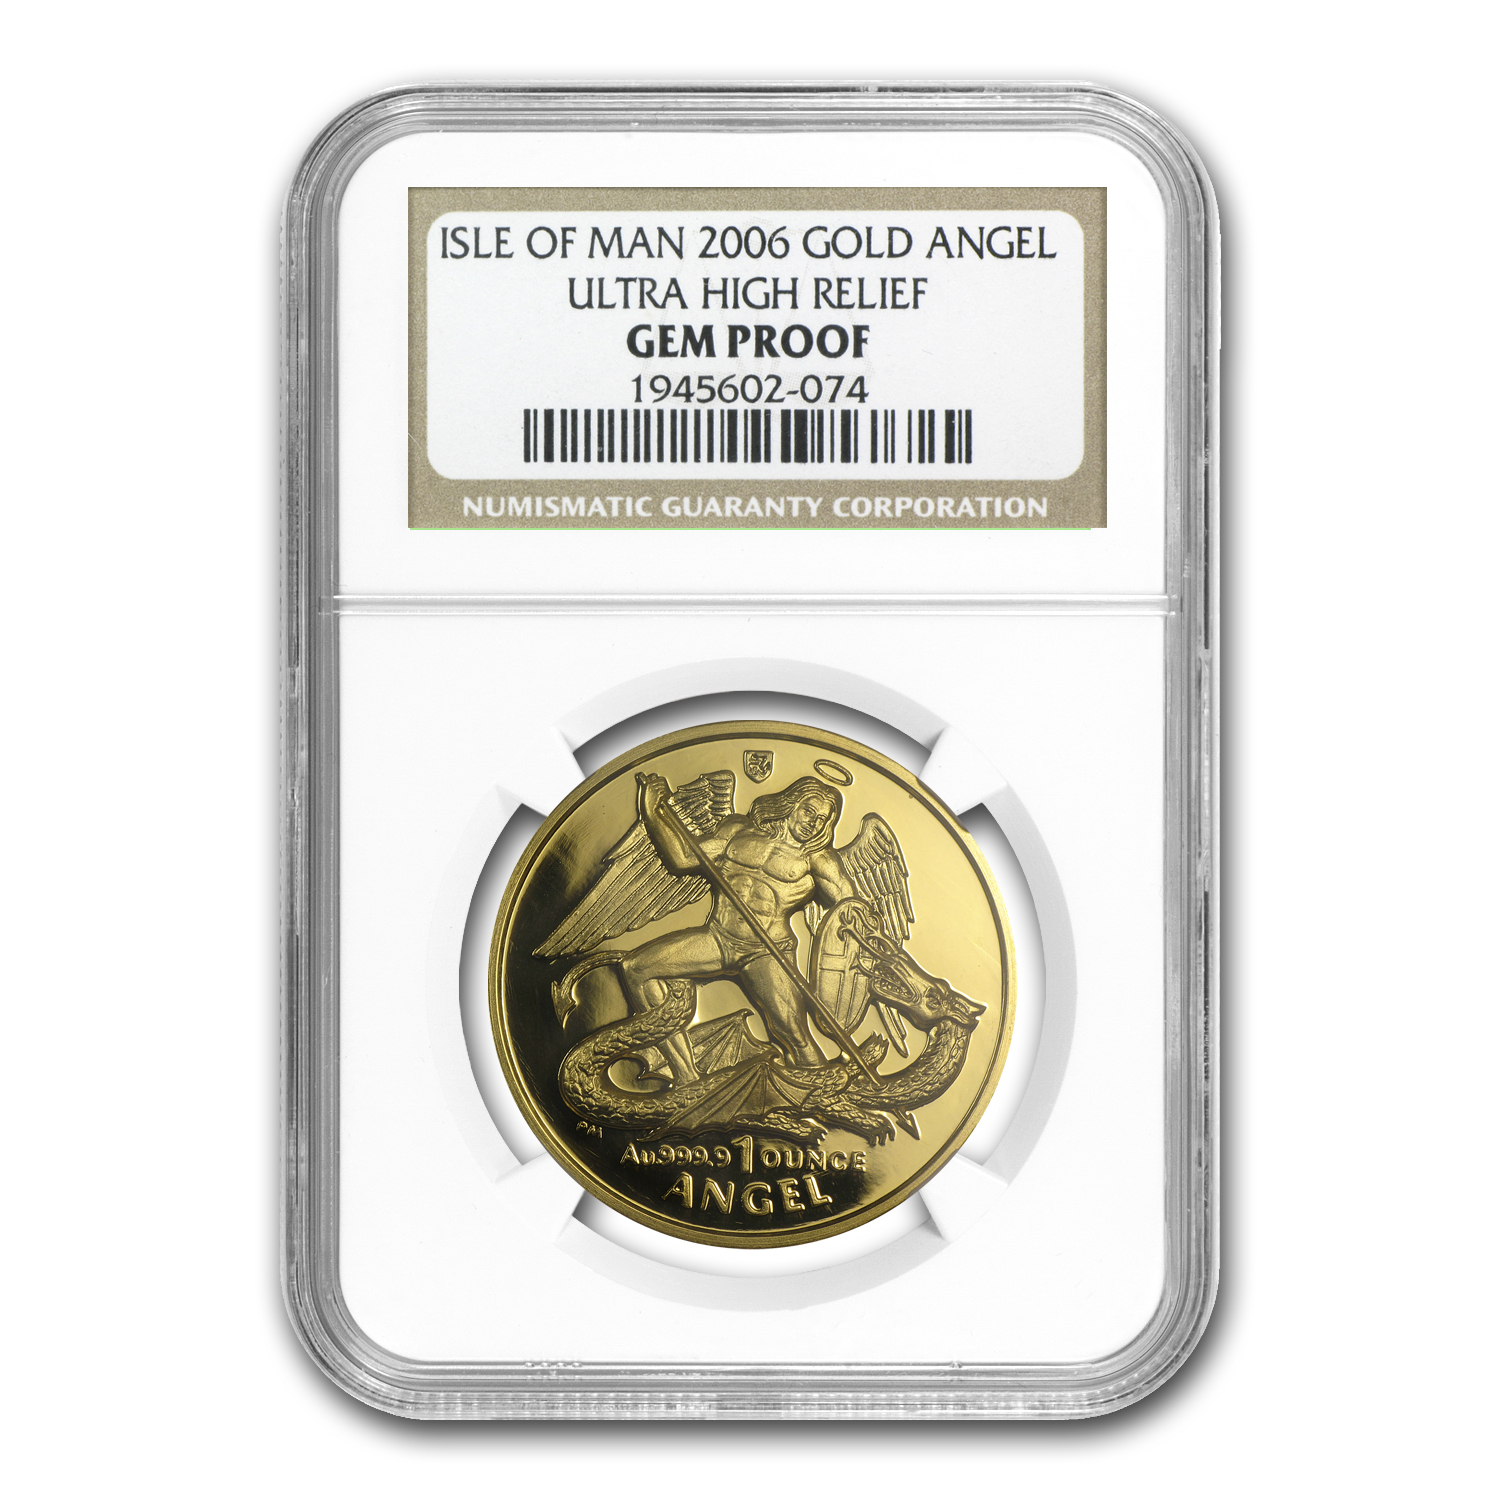 Isle of Man 2006 Proof Gold Angel UHR Gem Proof NGC